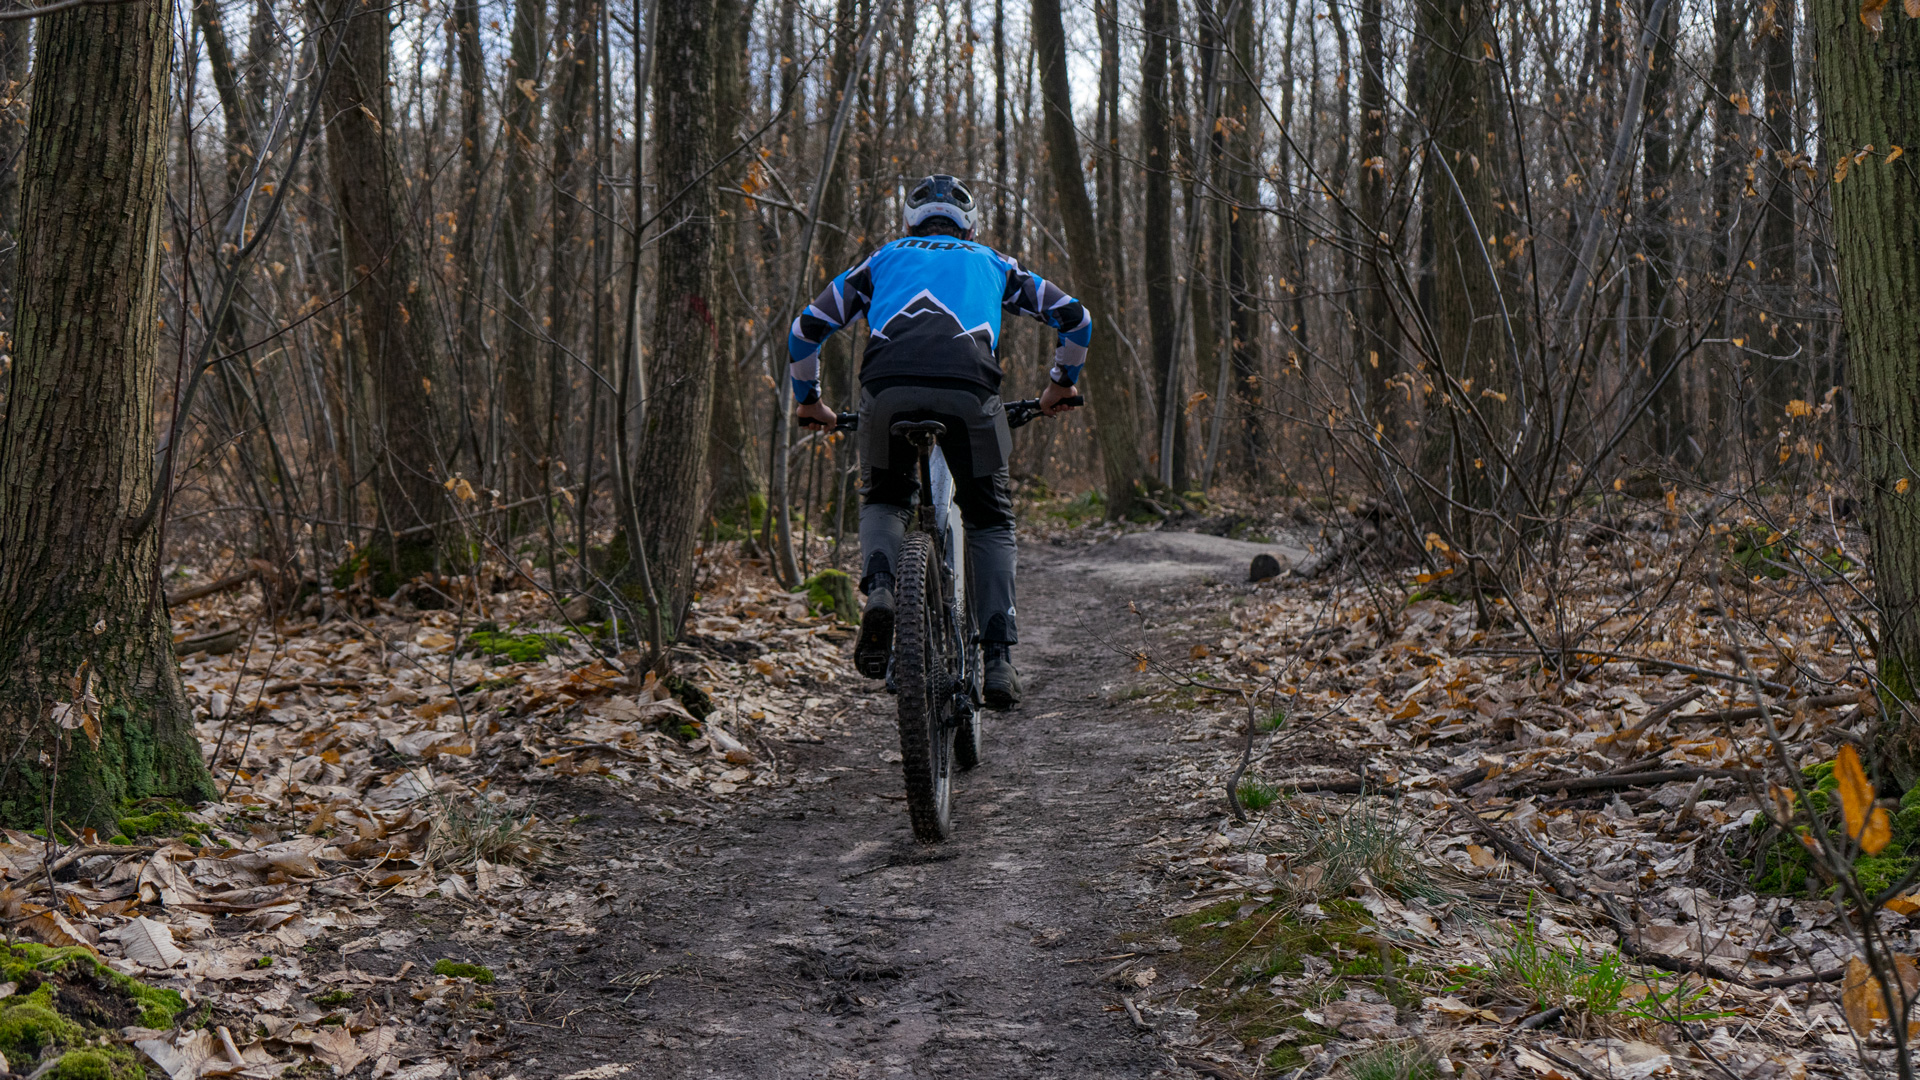 Cannondale Moterra 1 riding